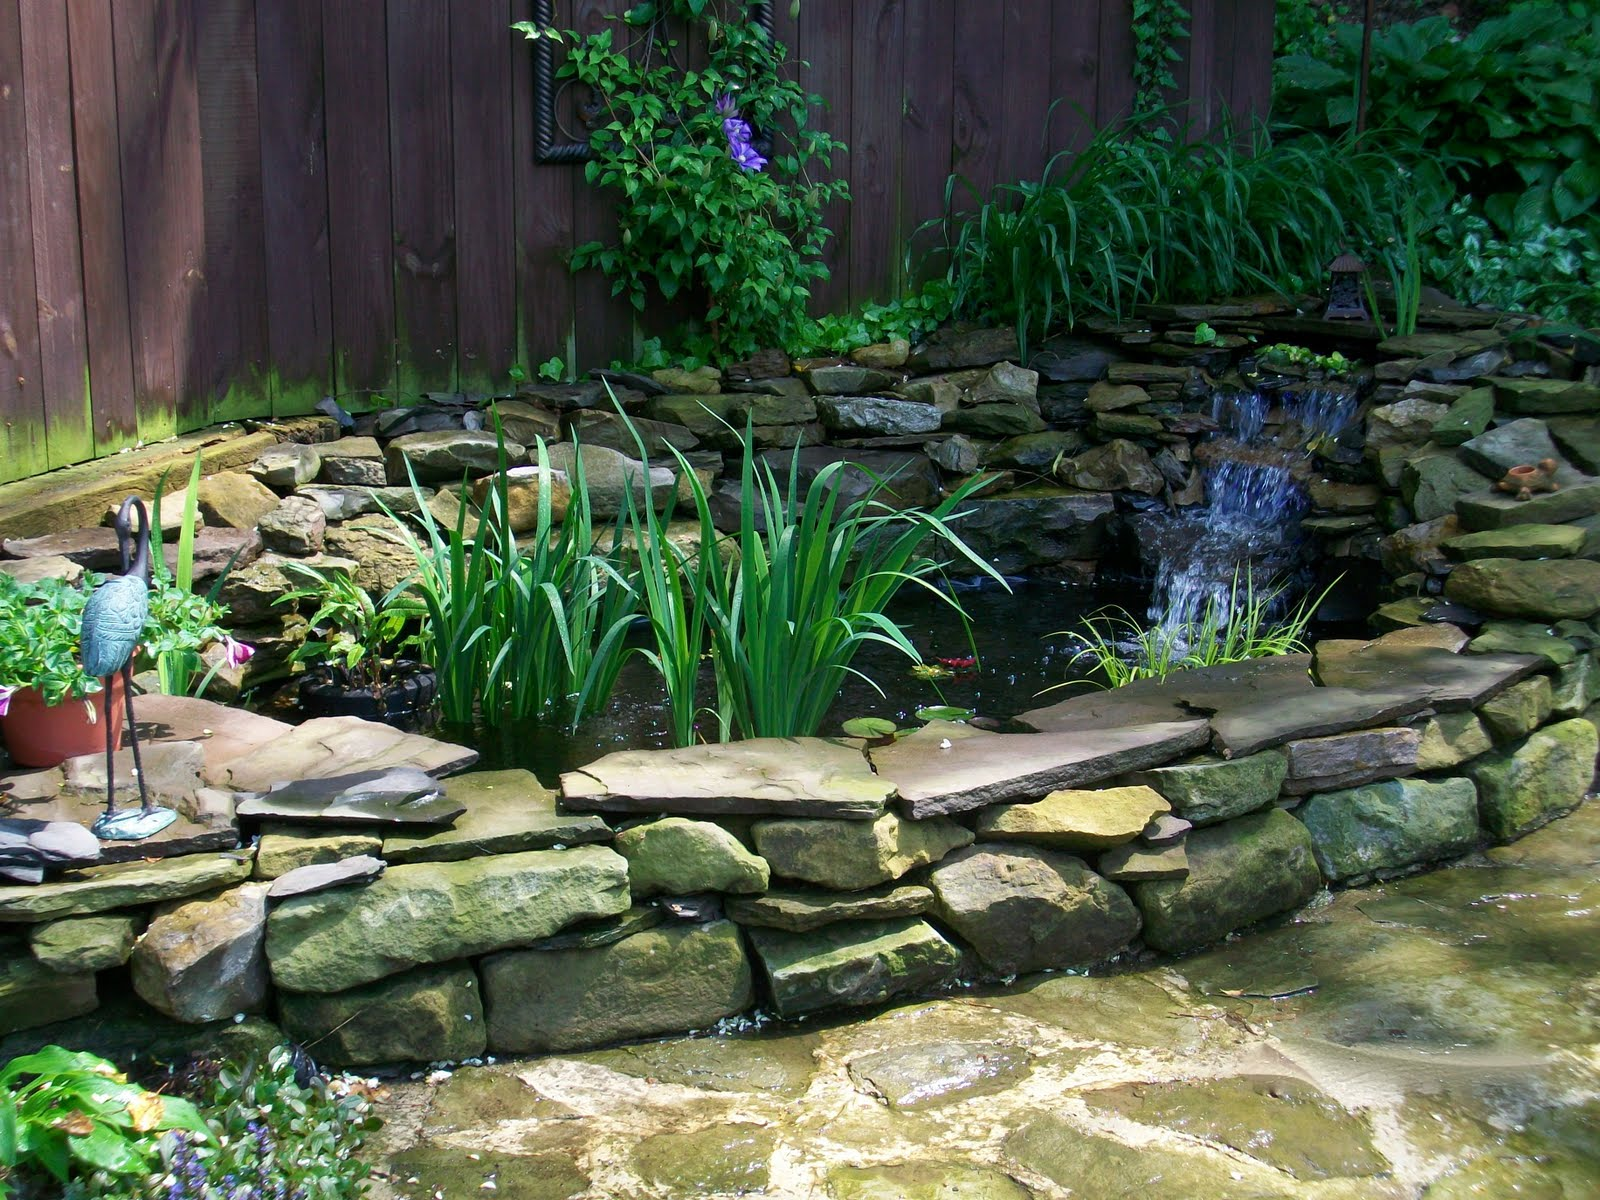 Building a backyard pond using a pond kit.: Building a